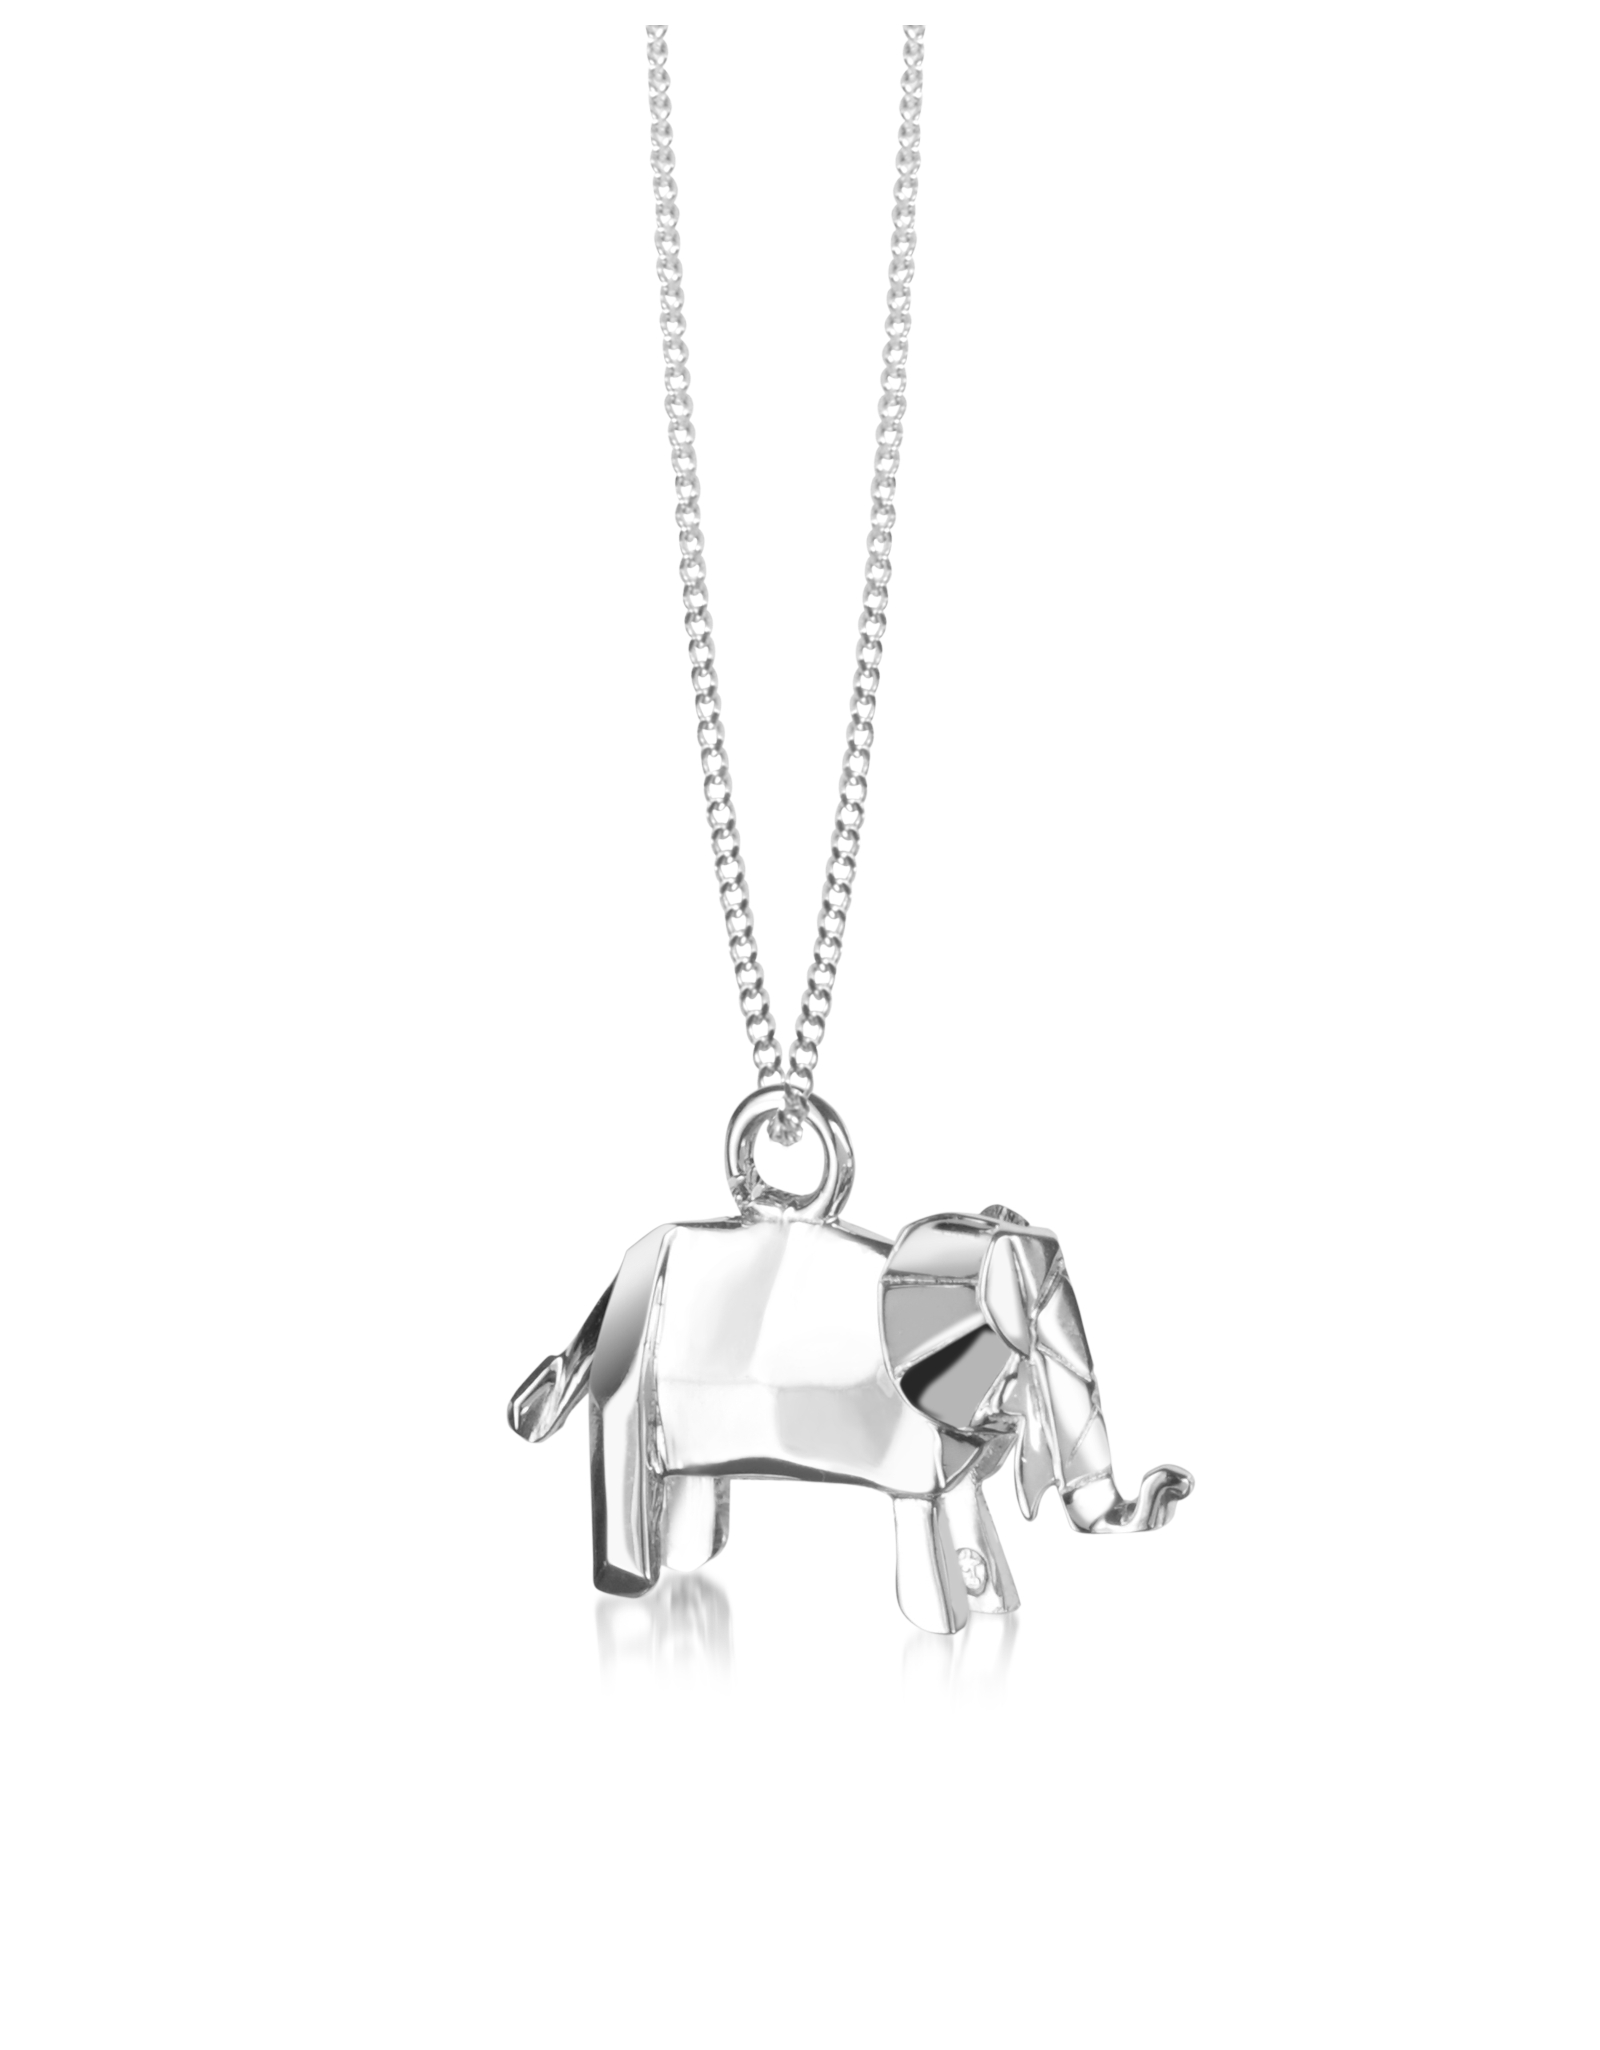 435301120204980259 besides Origami Sterling Silver Elephant Pendant Necklace besides Mickey mouse glove also X Men Wolverine Claws Cardboard Diy additionally David Yurman Mobile Pendant Necklace With Diamonds. on origami gloves